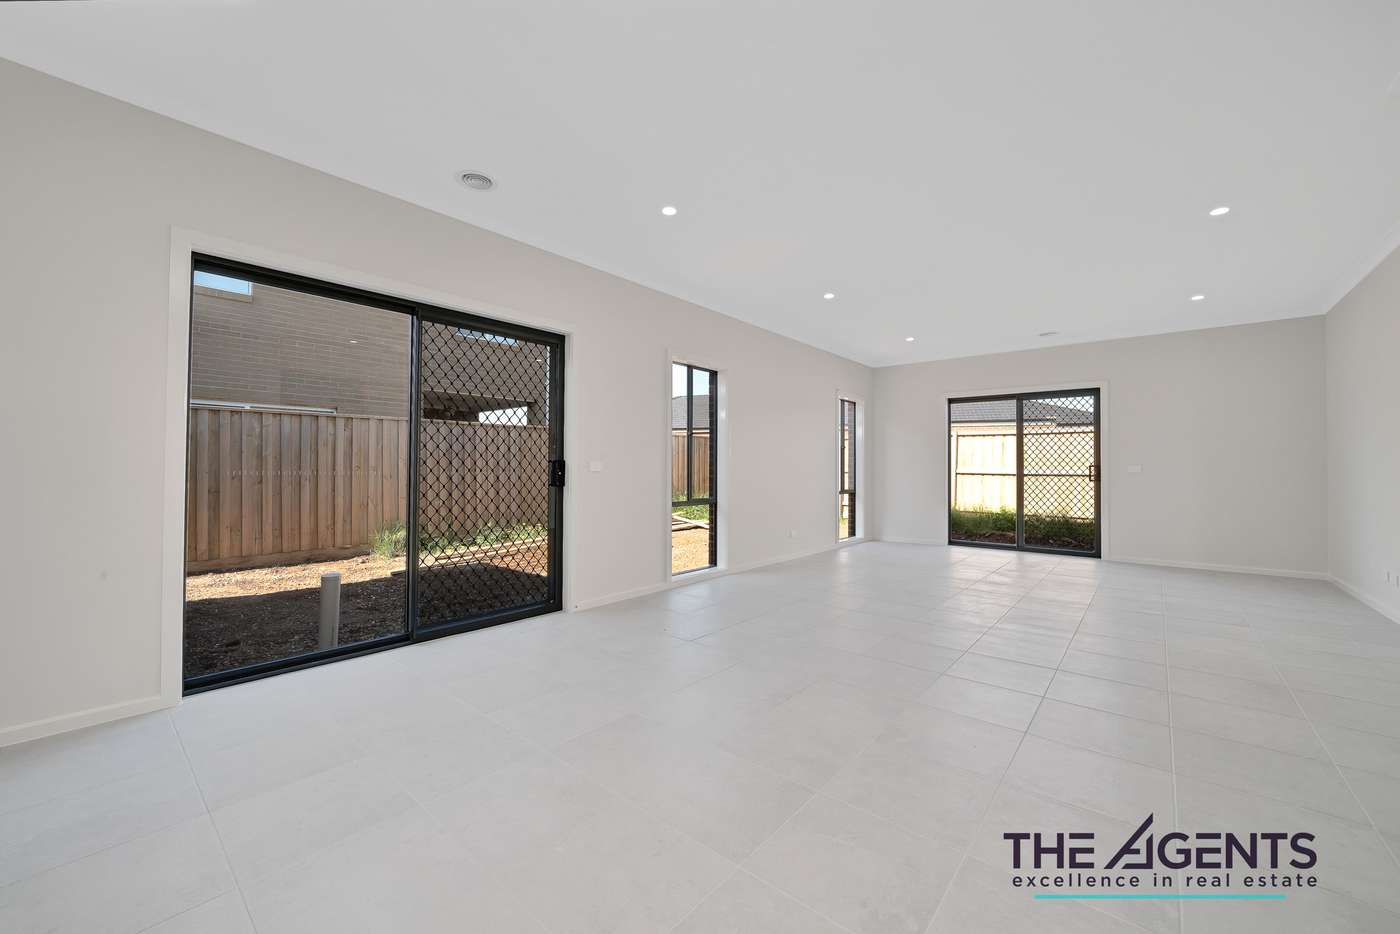 Sixth view of Homely house listing, 2 Braeside Drive, Wyndham Vale VIC 3024